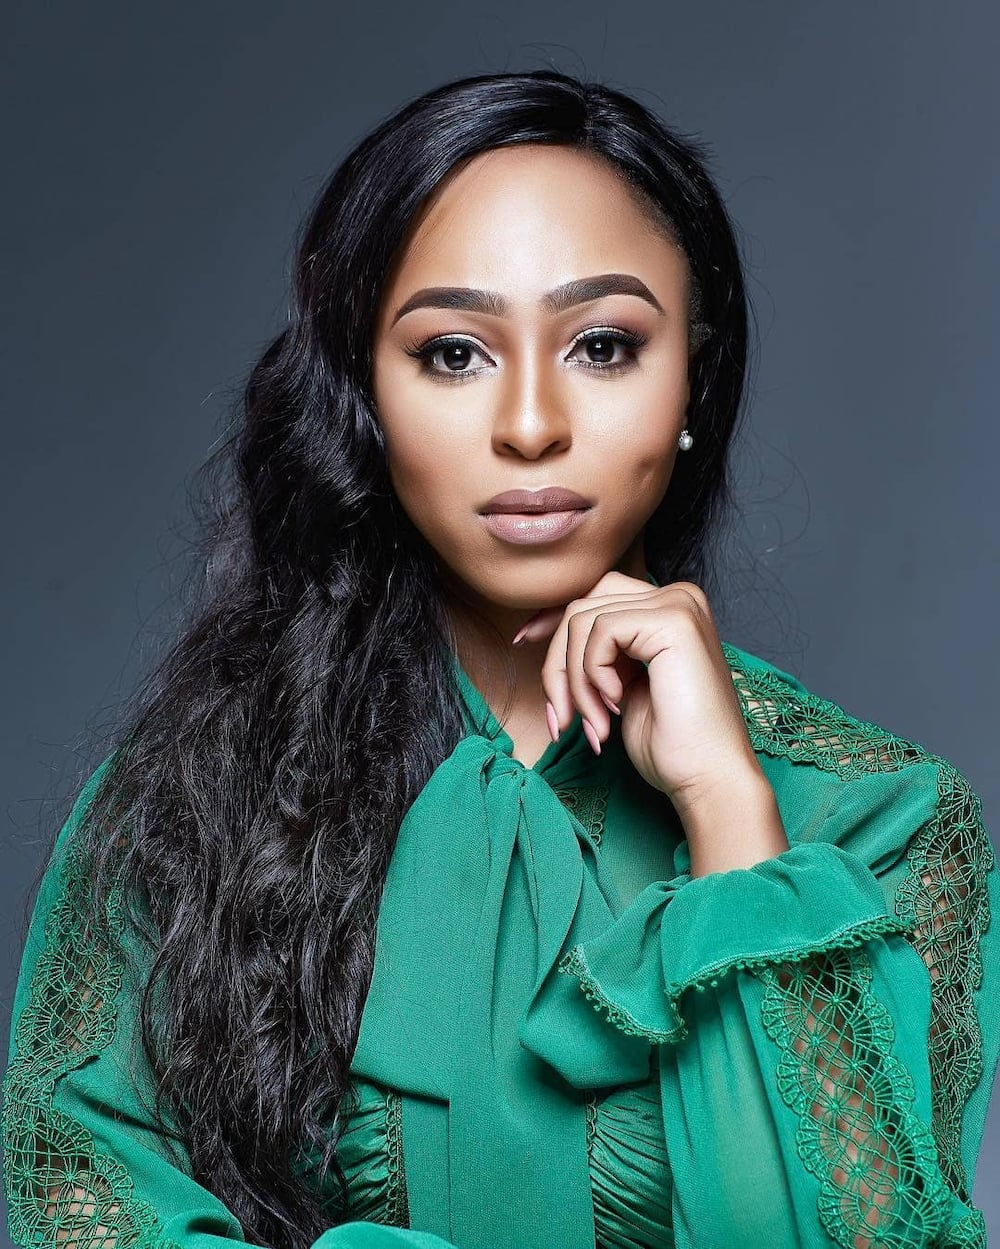 Thabile Ngwato age, husband, parents, news channel, Instagram and net worth